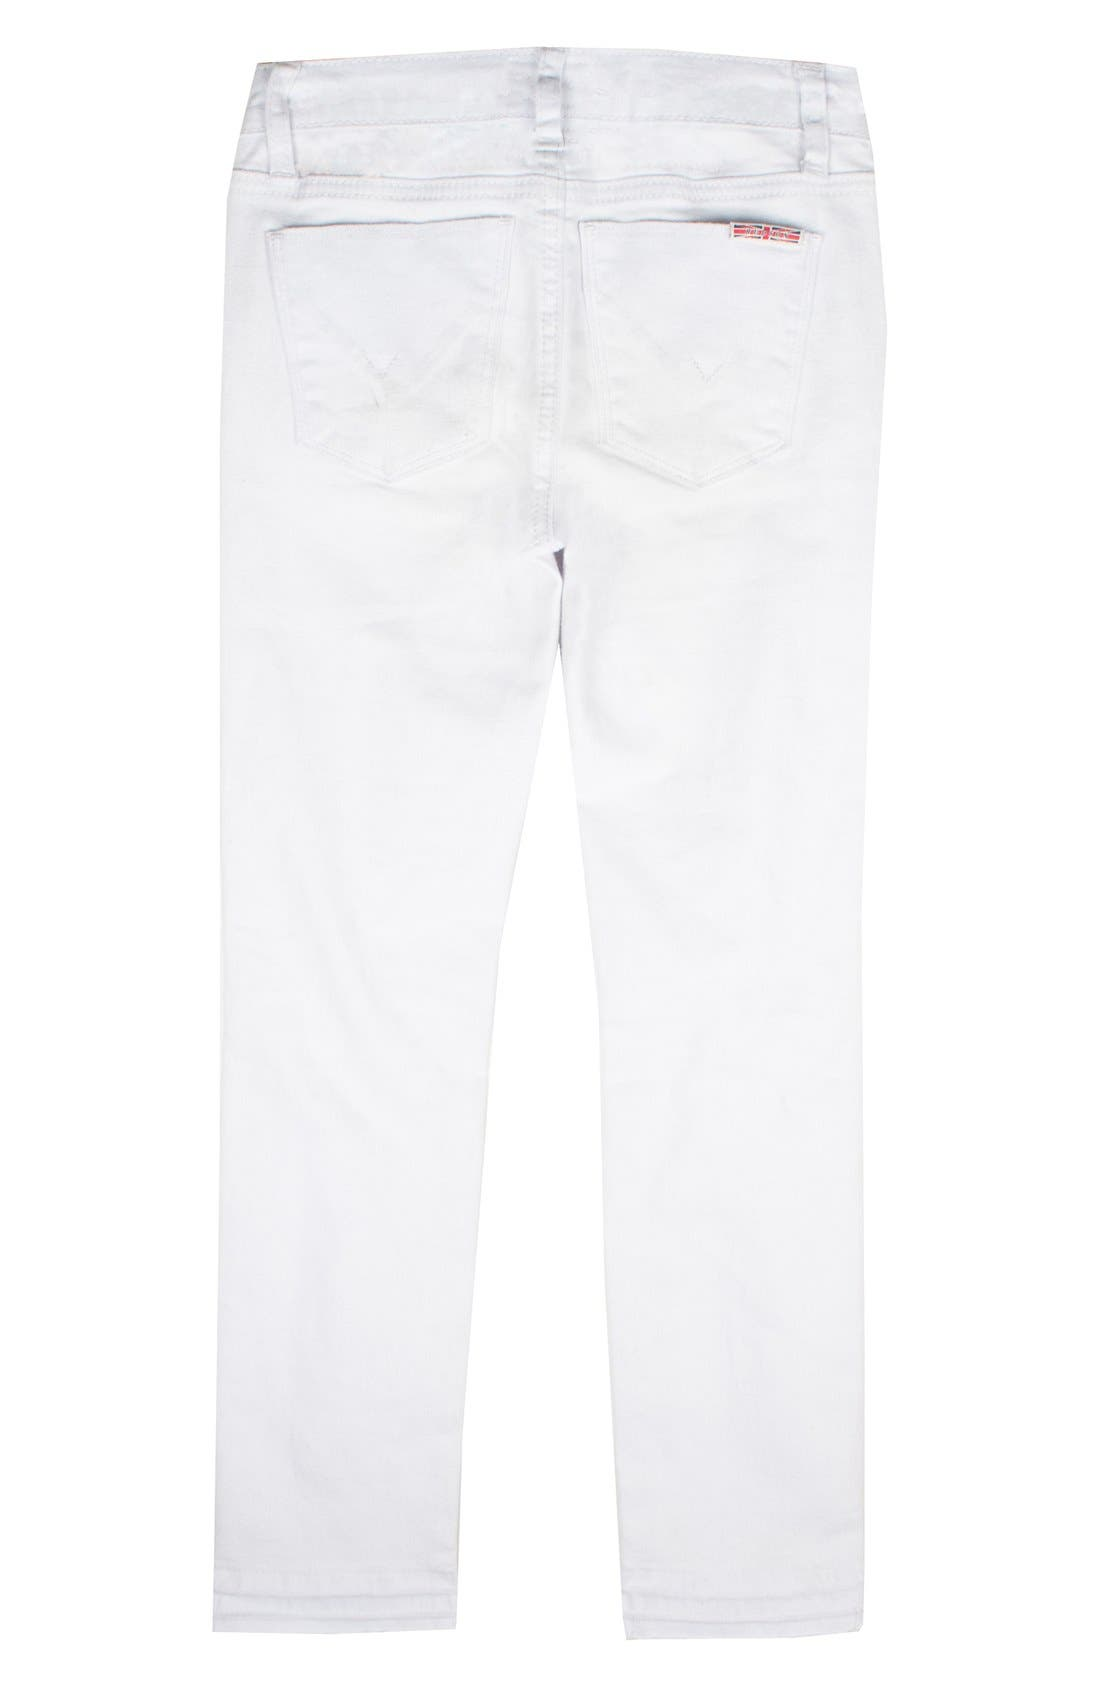 Seaside Crop Skinny Jeans,                             Alternate thumbnail 2, color,                             White Abyss